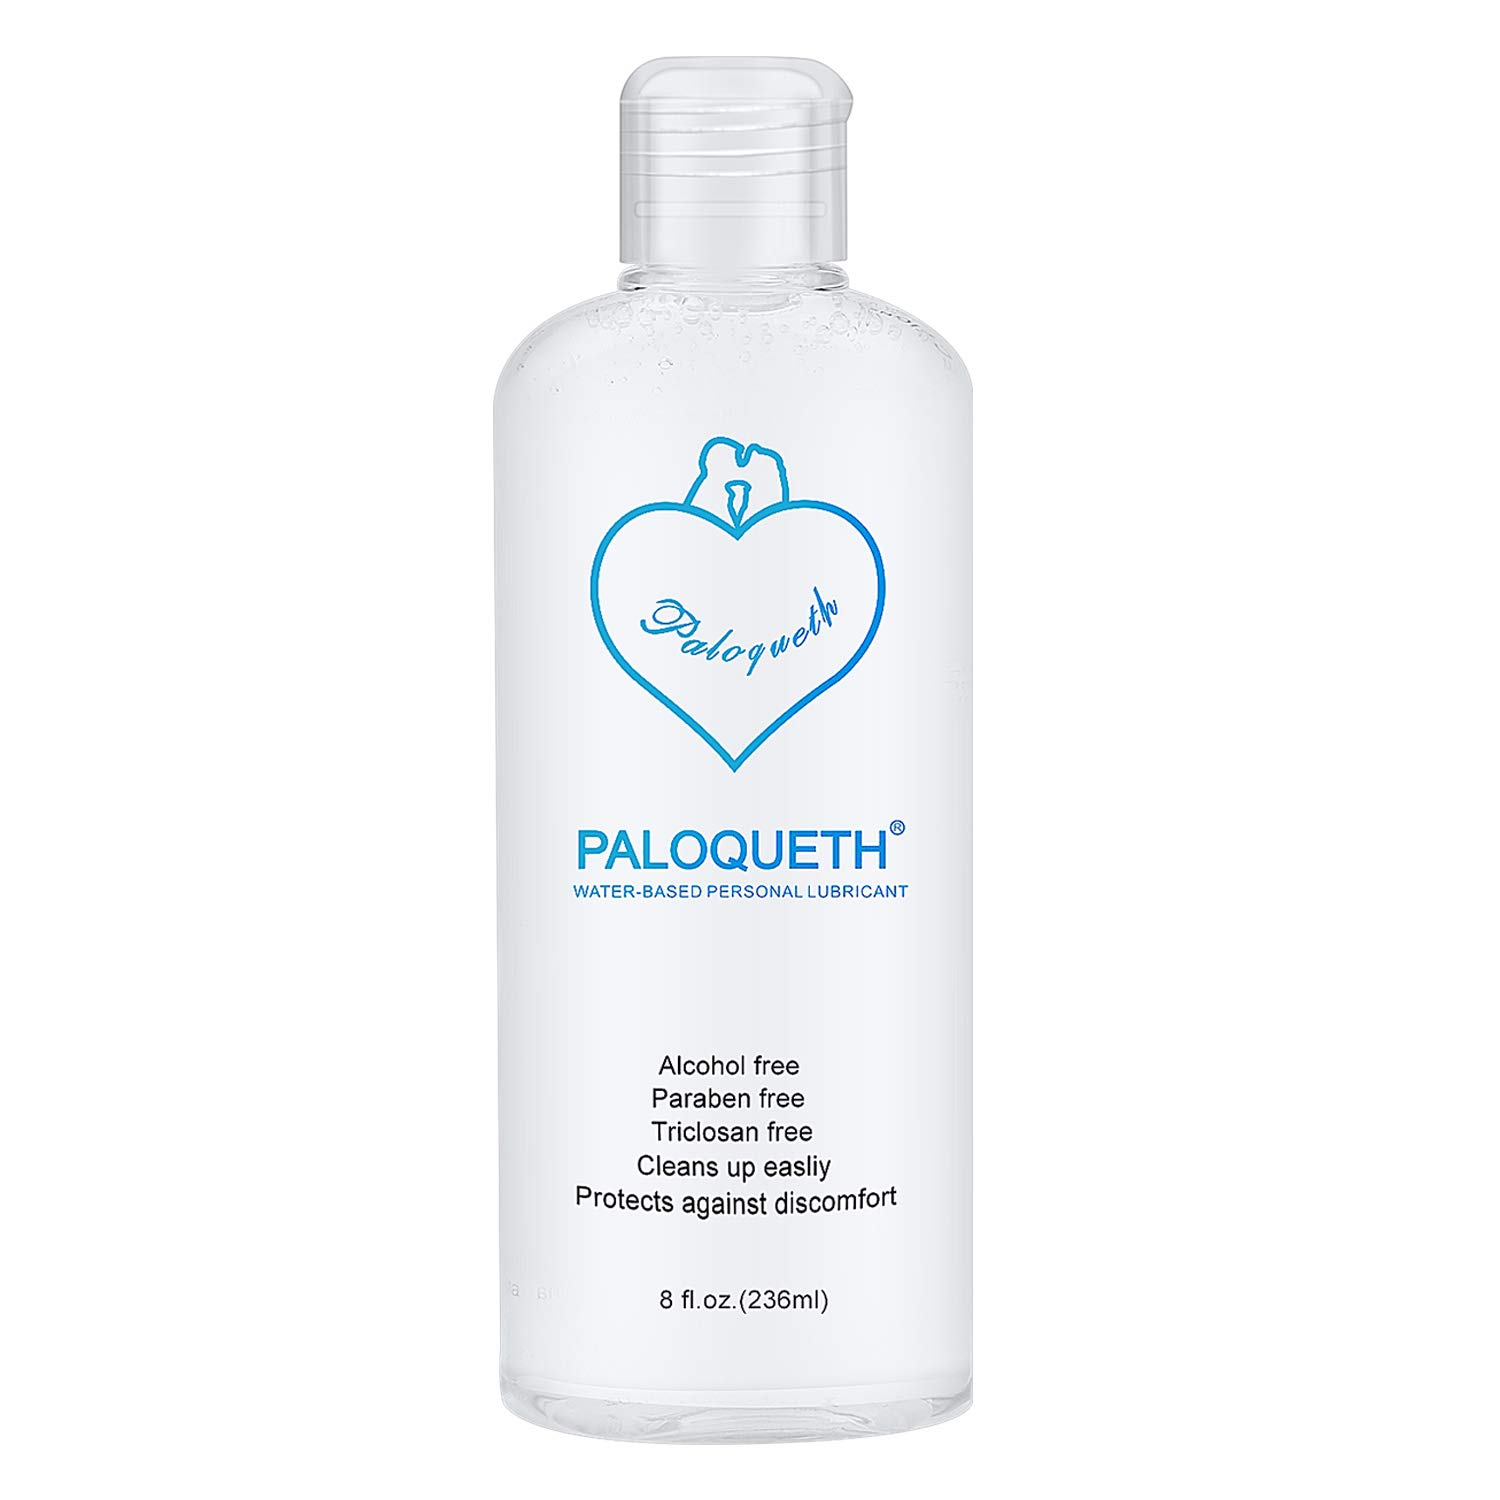 Best Lubricant For Menopause Dryness 2020.Lube For Women Paloqueth Personal Lubricants Water Based Lubricant Paraben Free Hypoallergenic 8 Oz